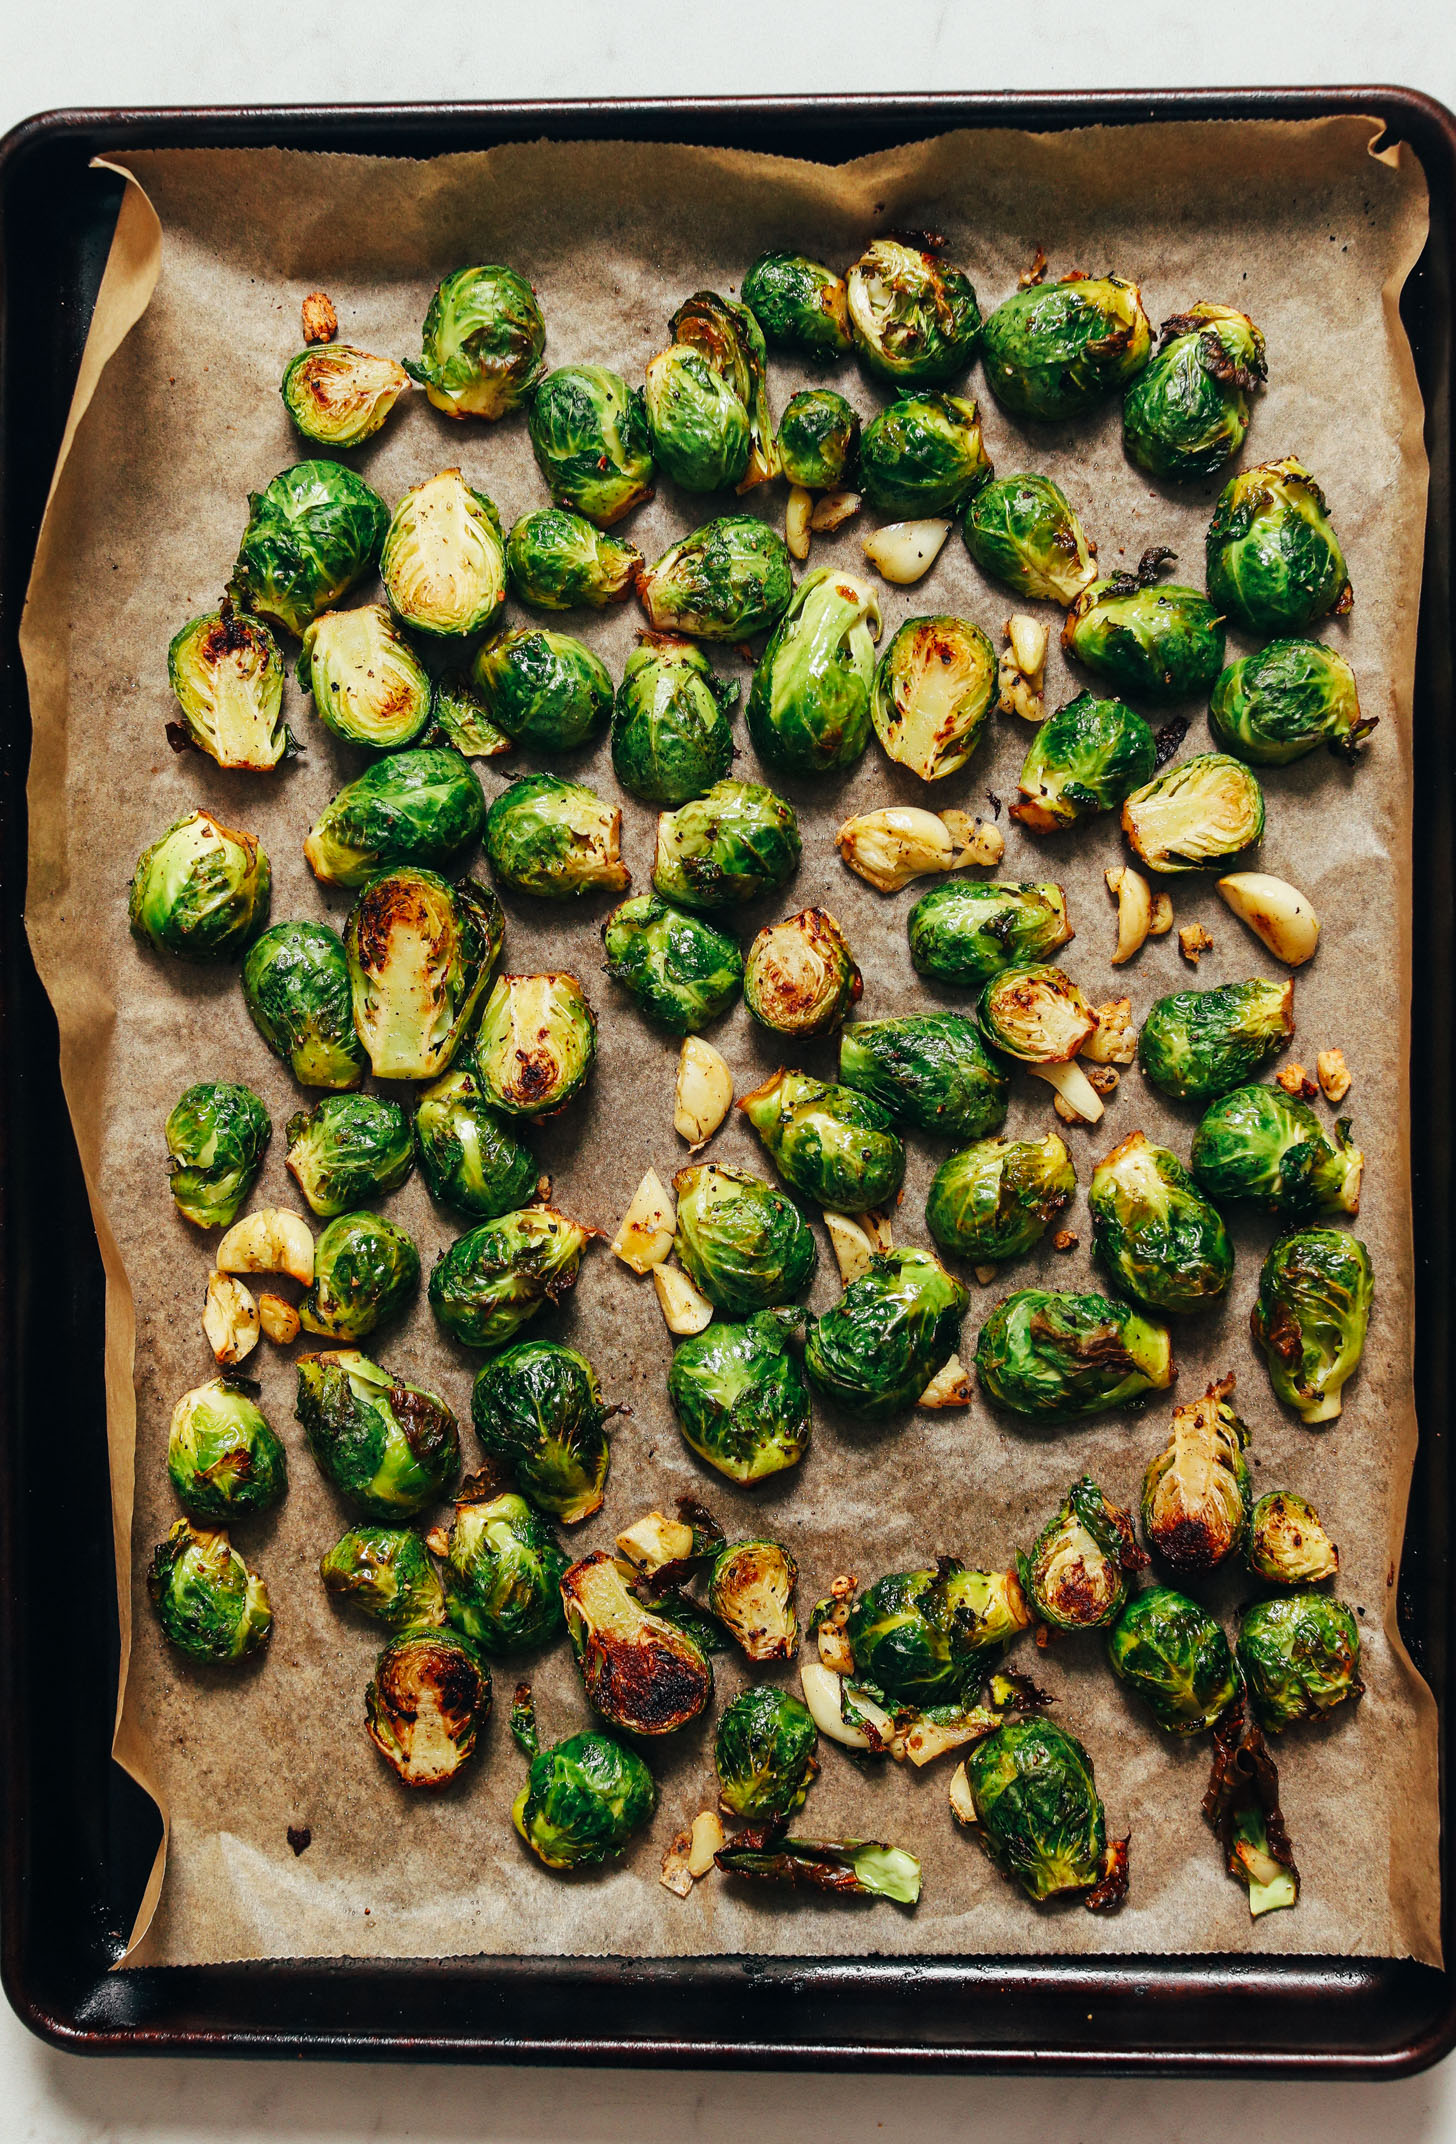 Baking sheet lined with roasted Brussels sprouts baking paper